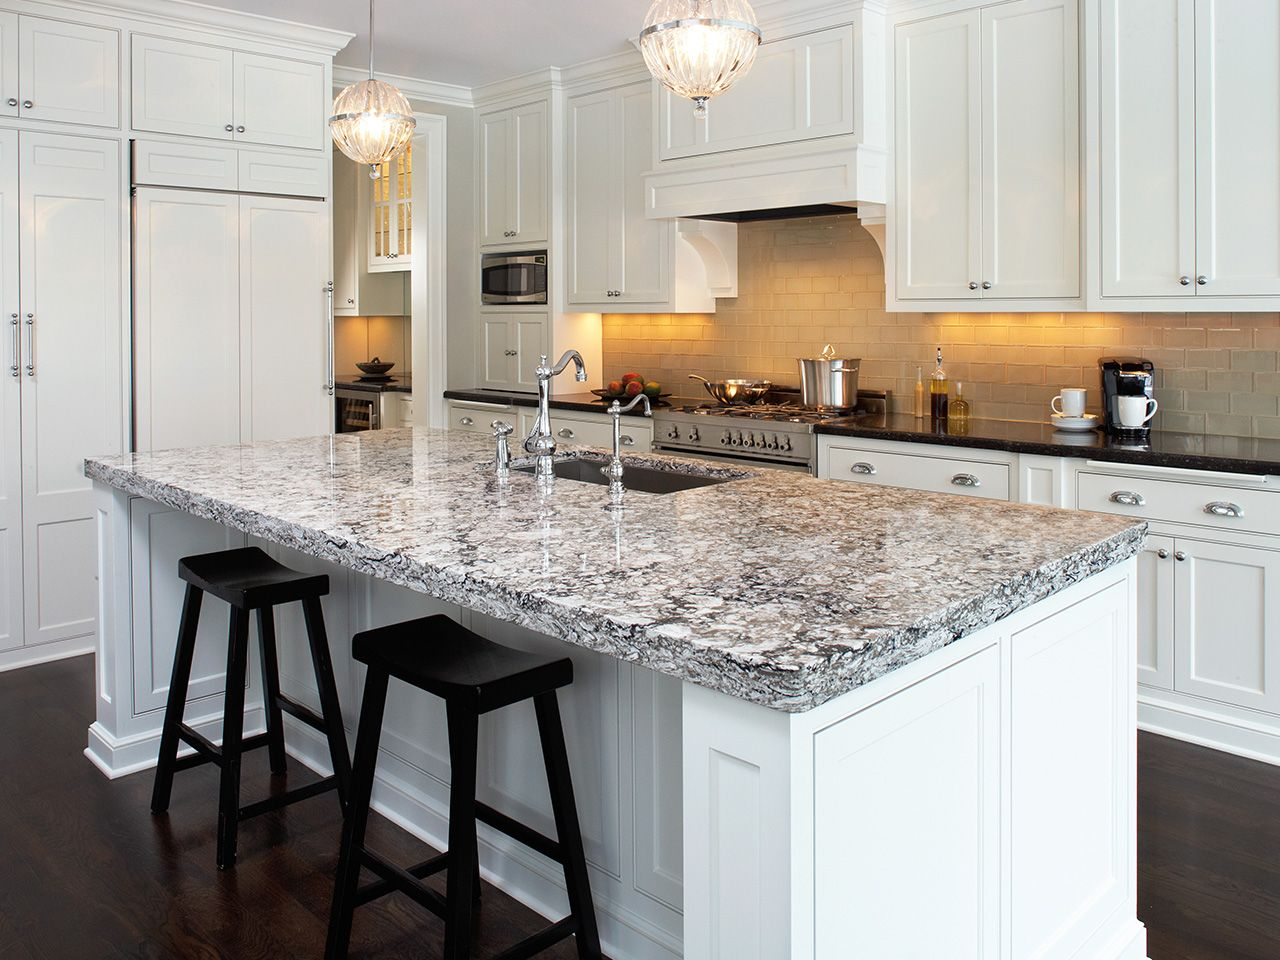 subway cabinets b and paired beige quartz countertops backsplash stock cream shaker tile kitchen design white photo with